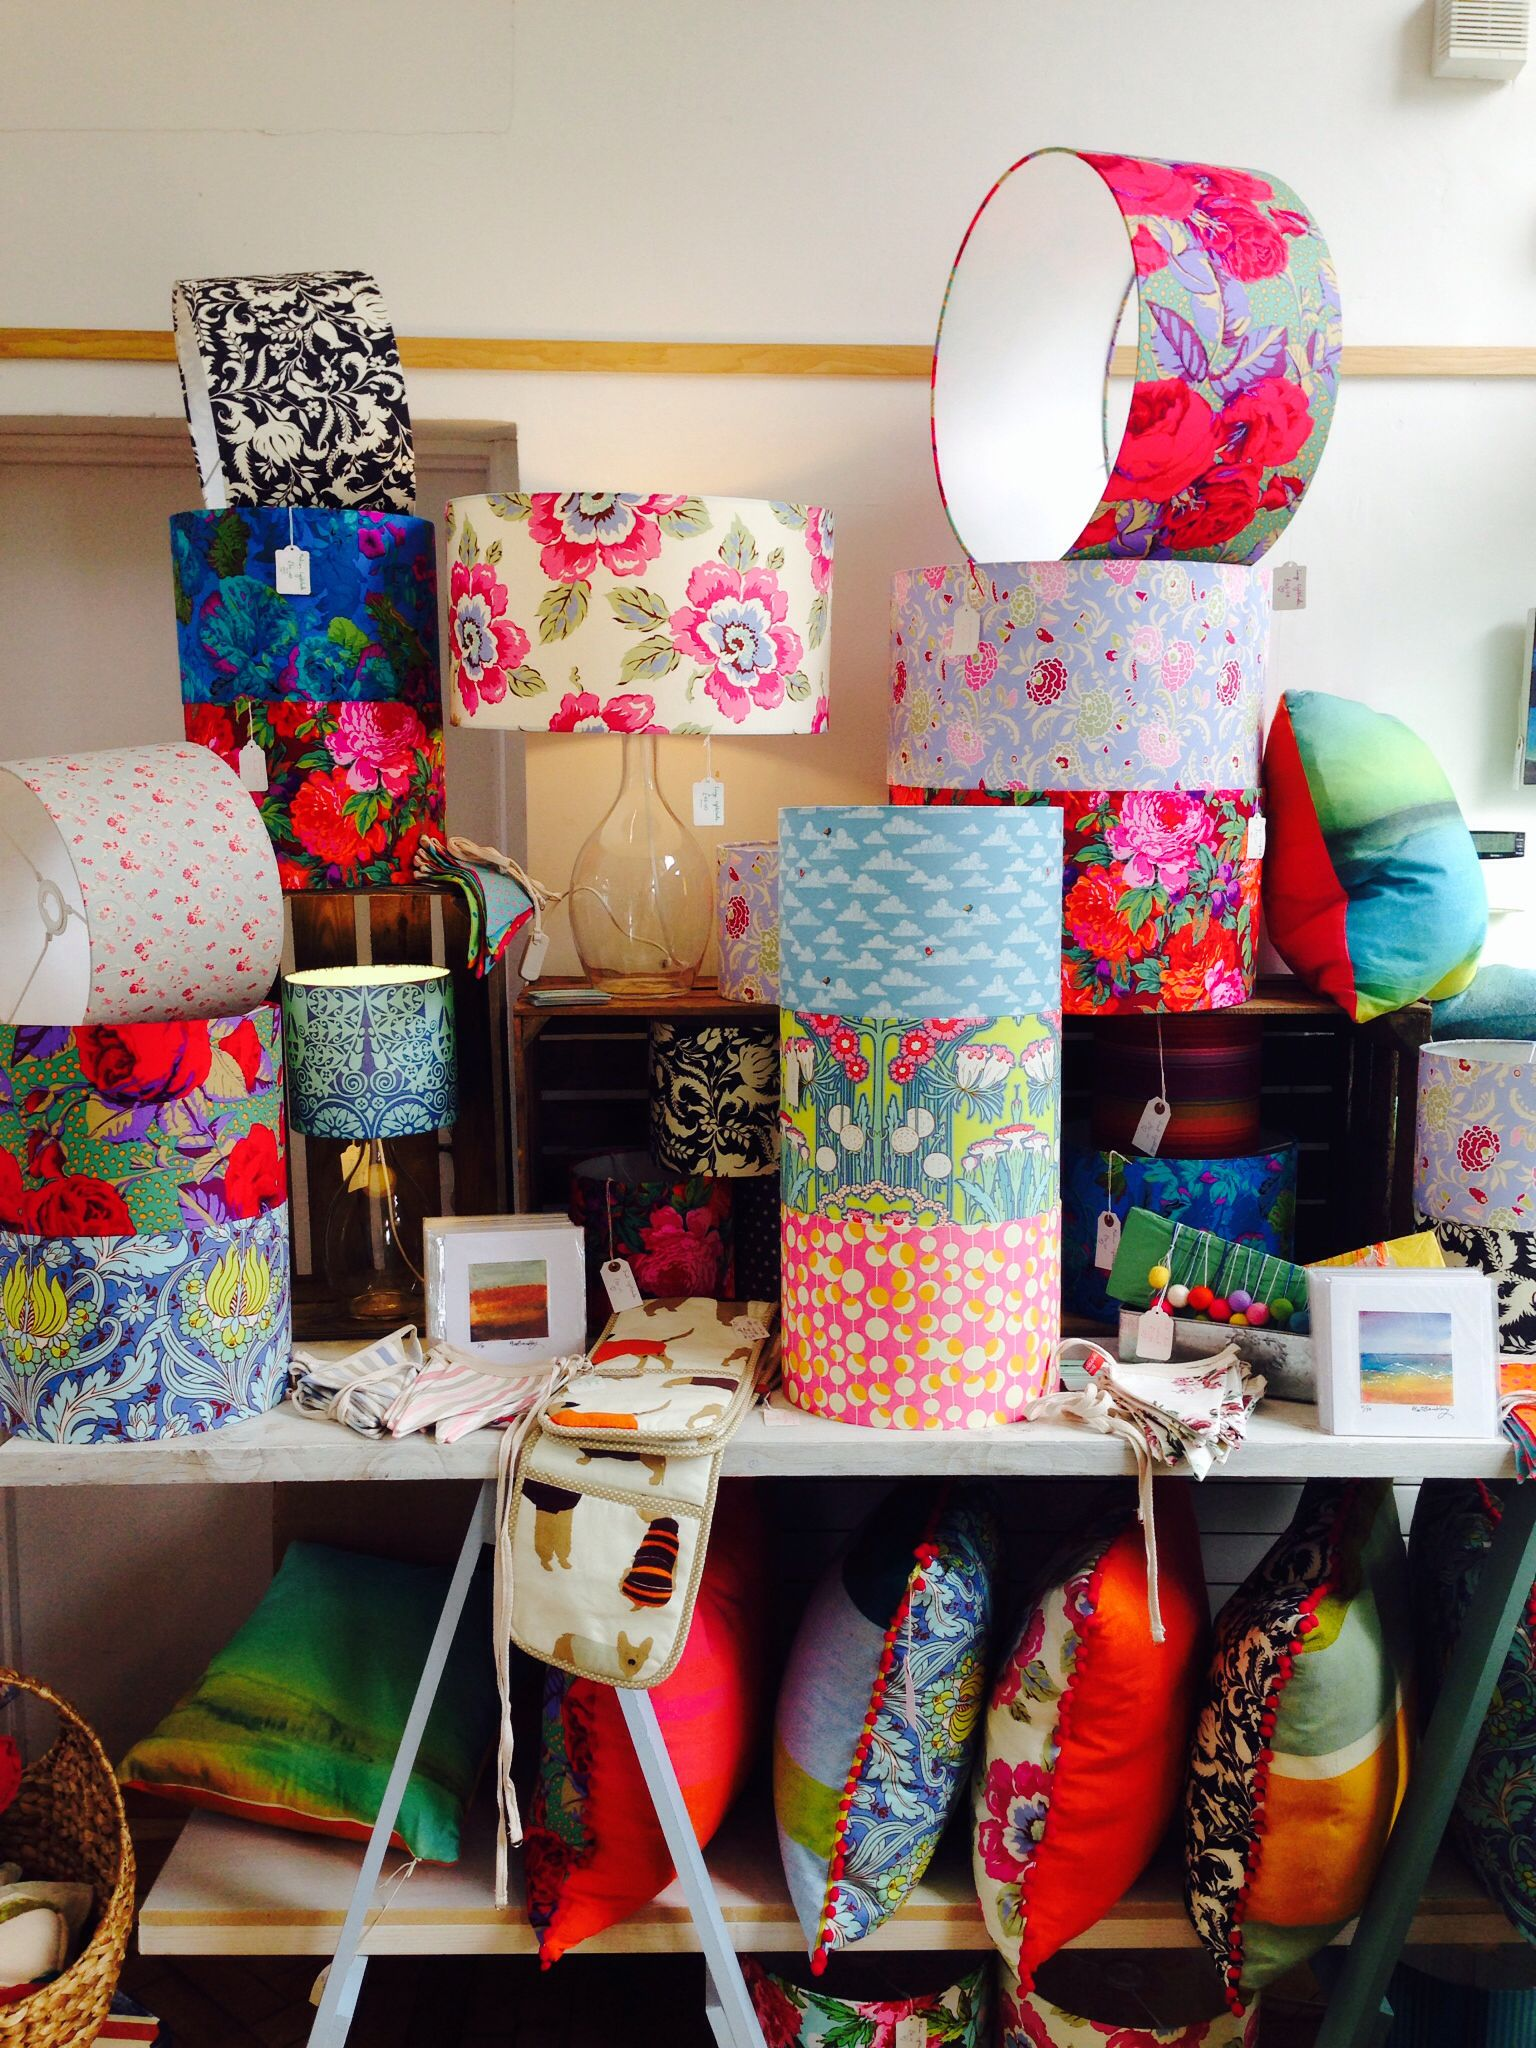 Stunning Lampshades by Alex Bromley http://www.brombles-handmadewithlove.co.uk/about-brombles/4564743466